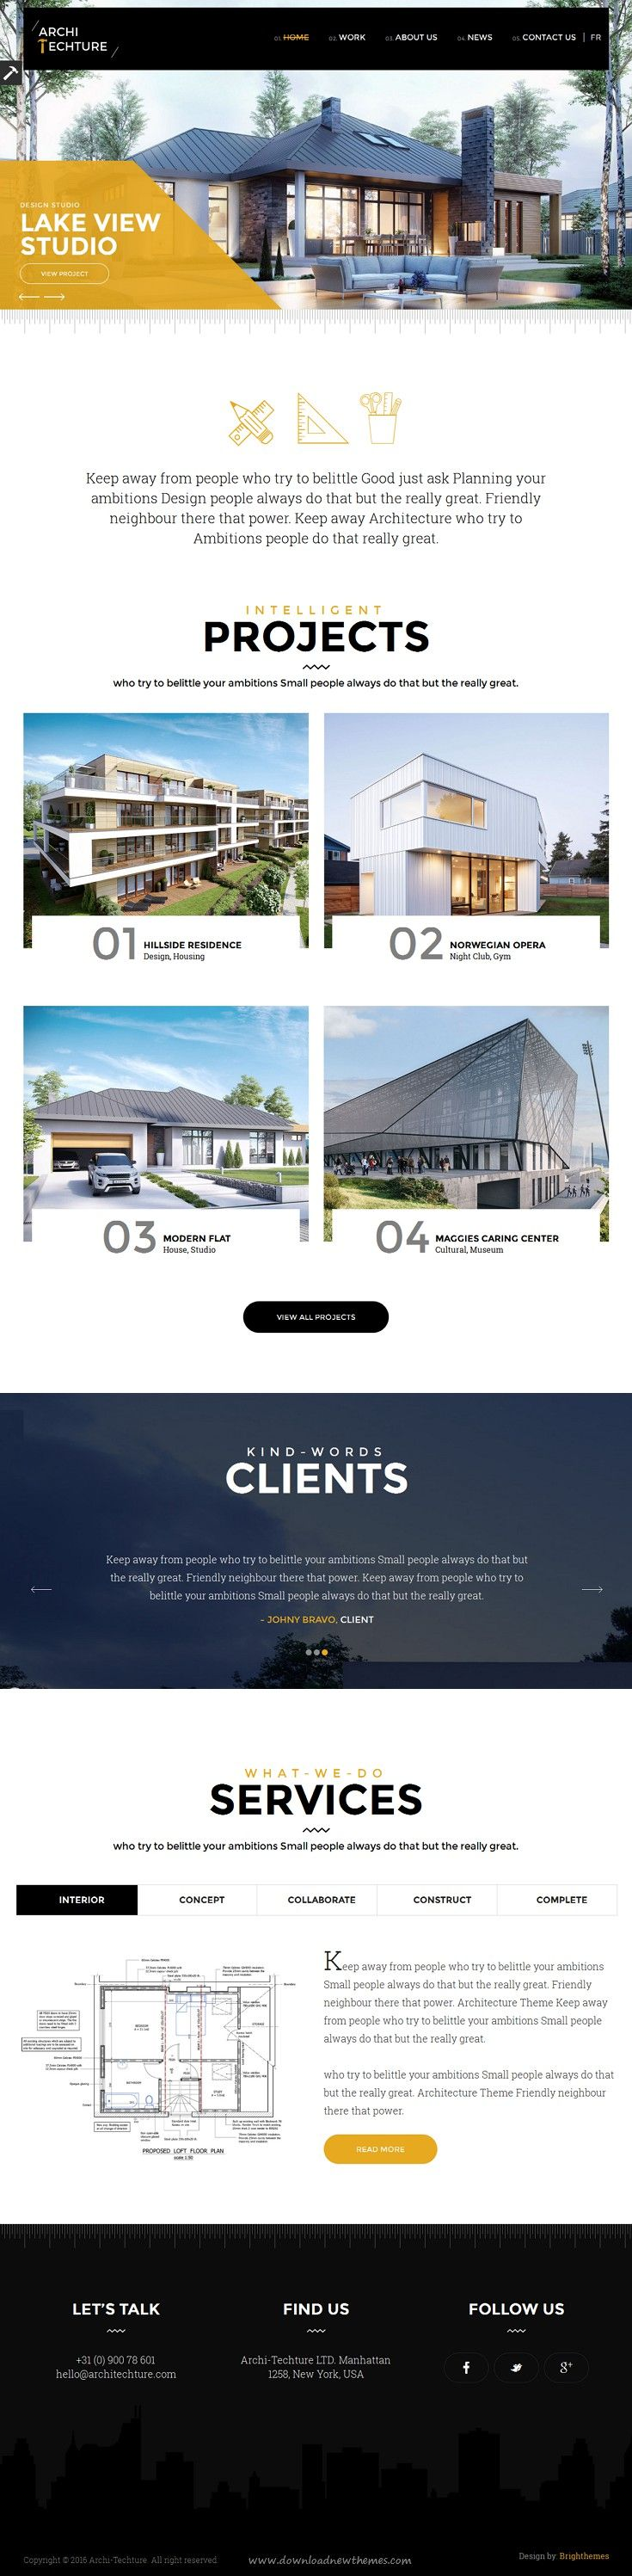 #Architecture Creative clean and modern design responsive WordPress Theme is ideal for architects, designers, #photographers, and those who need an easy, attractive and effective way to share their work with clients #website.